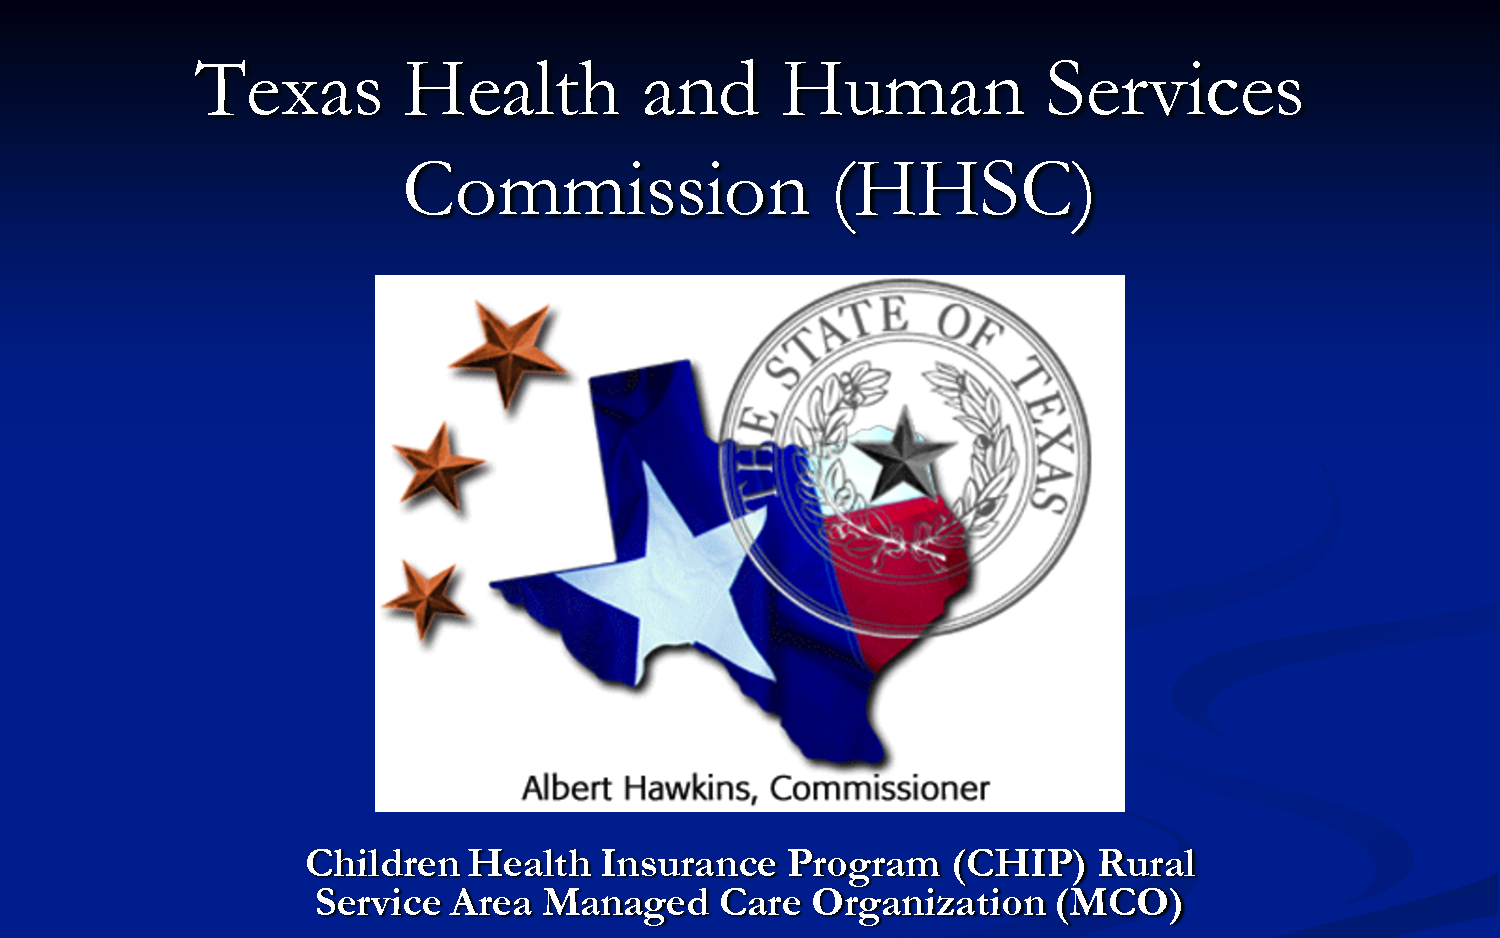 Texas Health and Human Services Commission Issues RFP ...